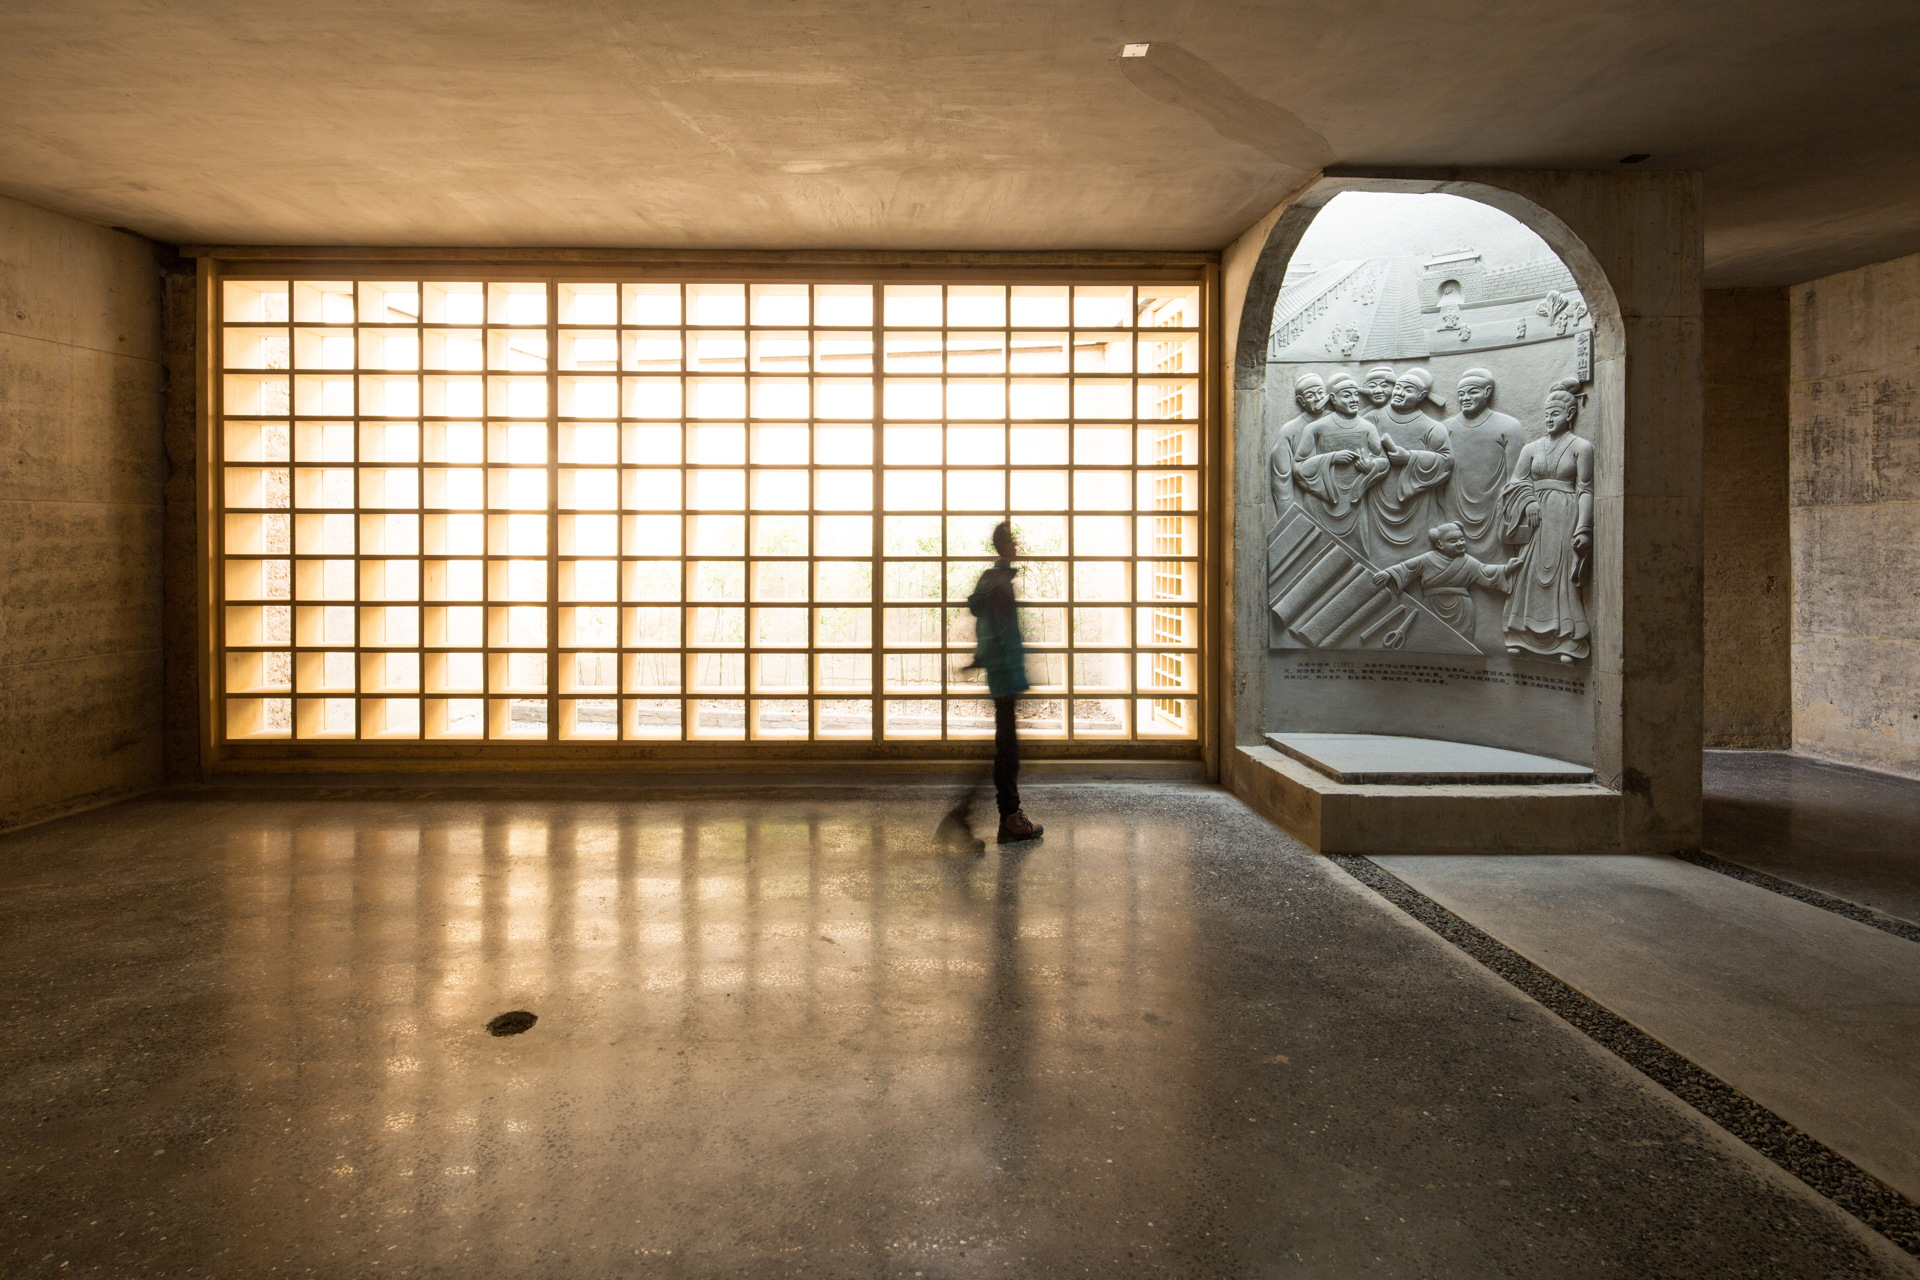 DnA_Design and Architecture Studio: Wang Jing Memorial Hall